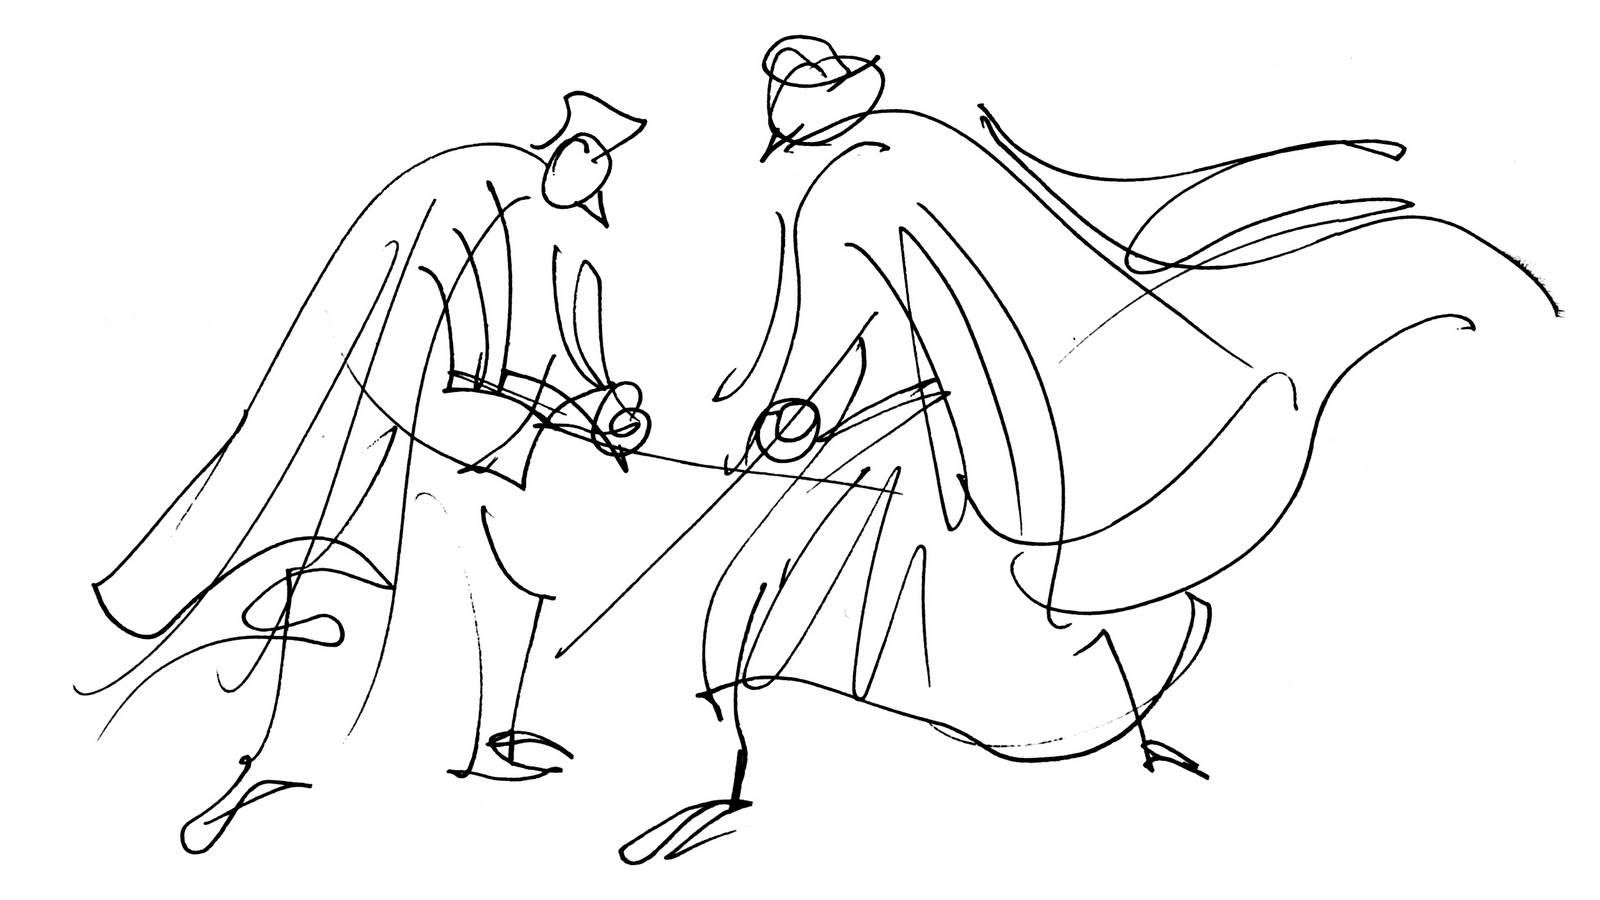 romeo and juliet coloring pages - photo#18